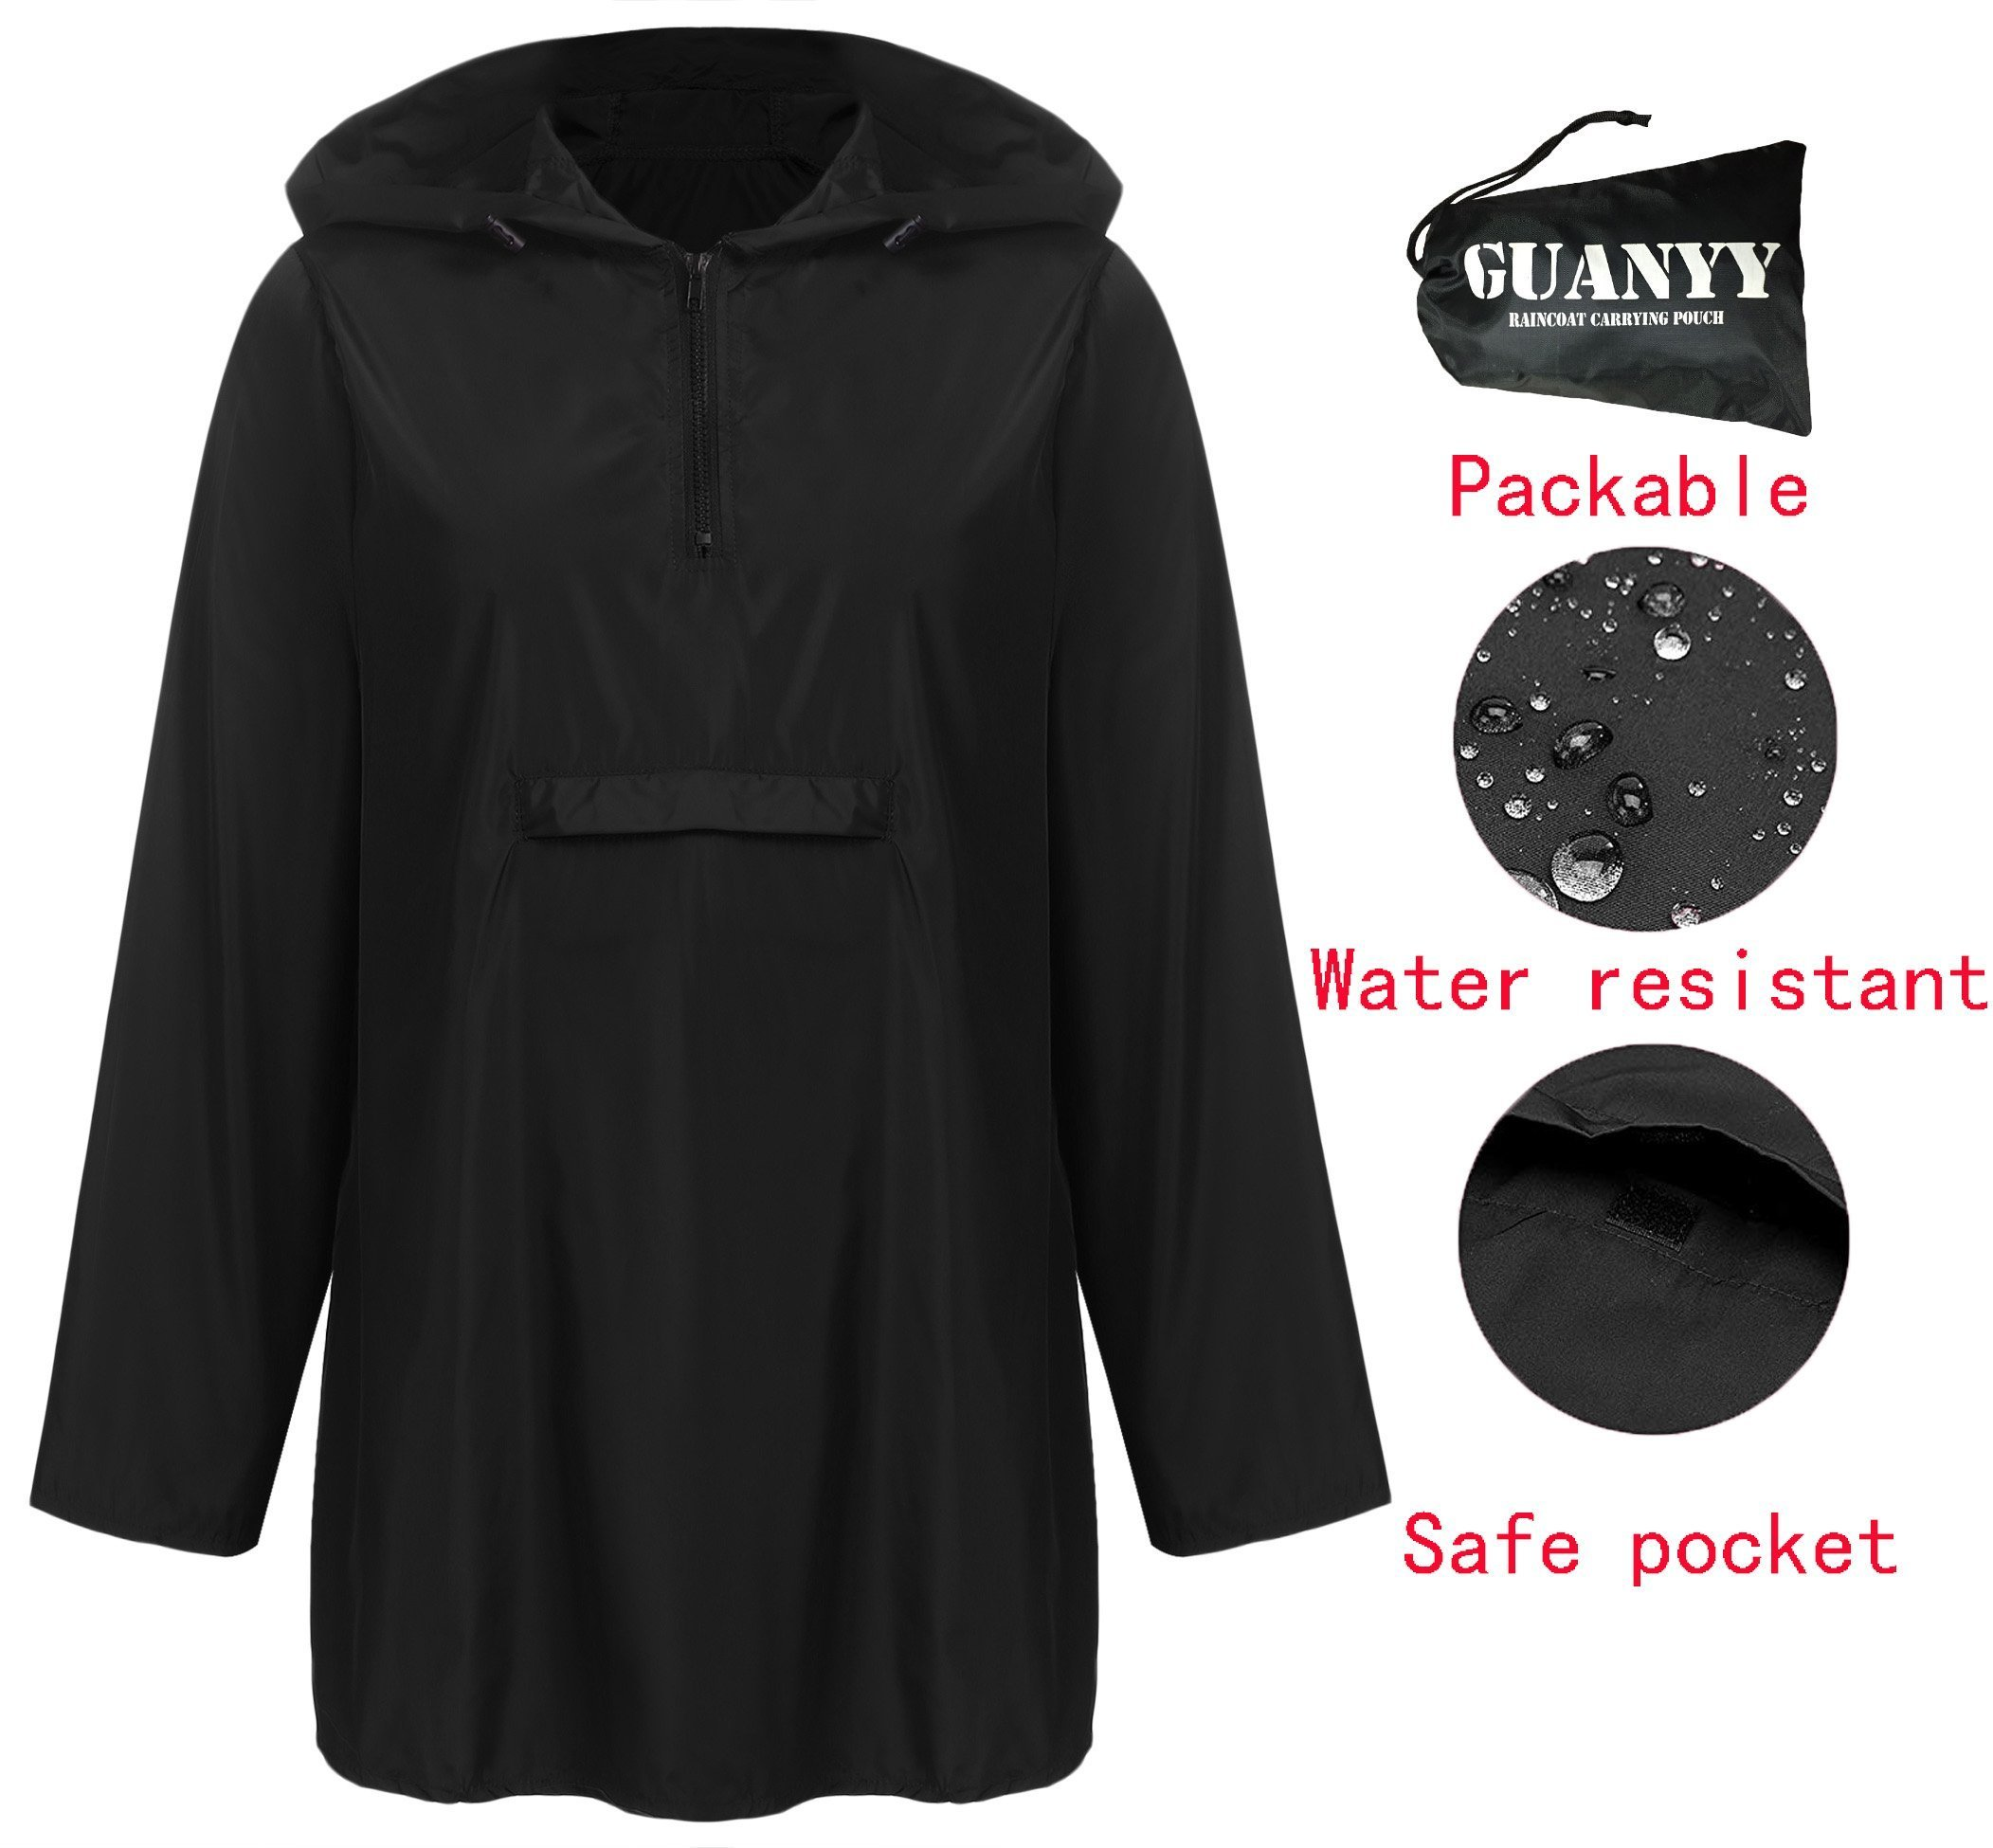 GUANYY Women's Waterproof Raincoat Outdoor Hooded Lightweight Windbreaker Jacket(Black,Large)